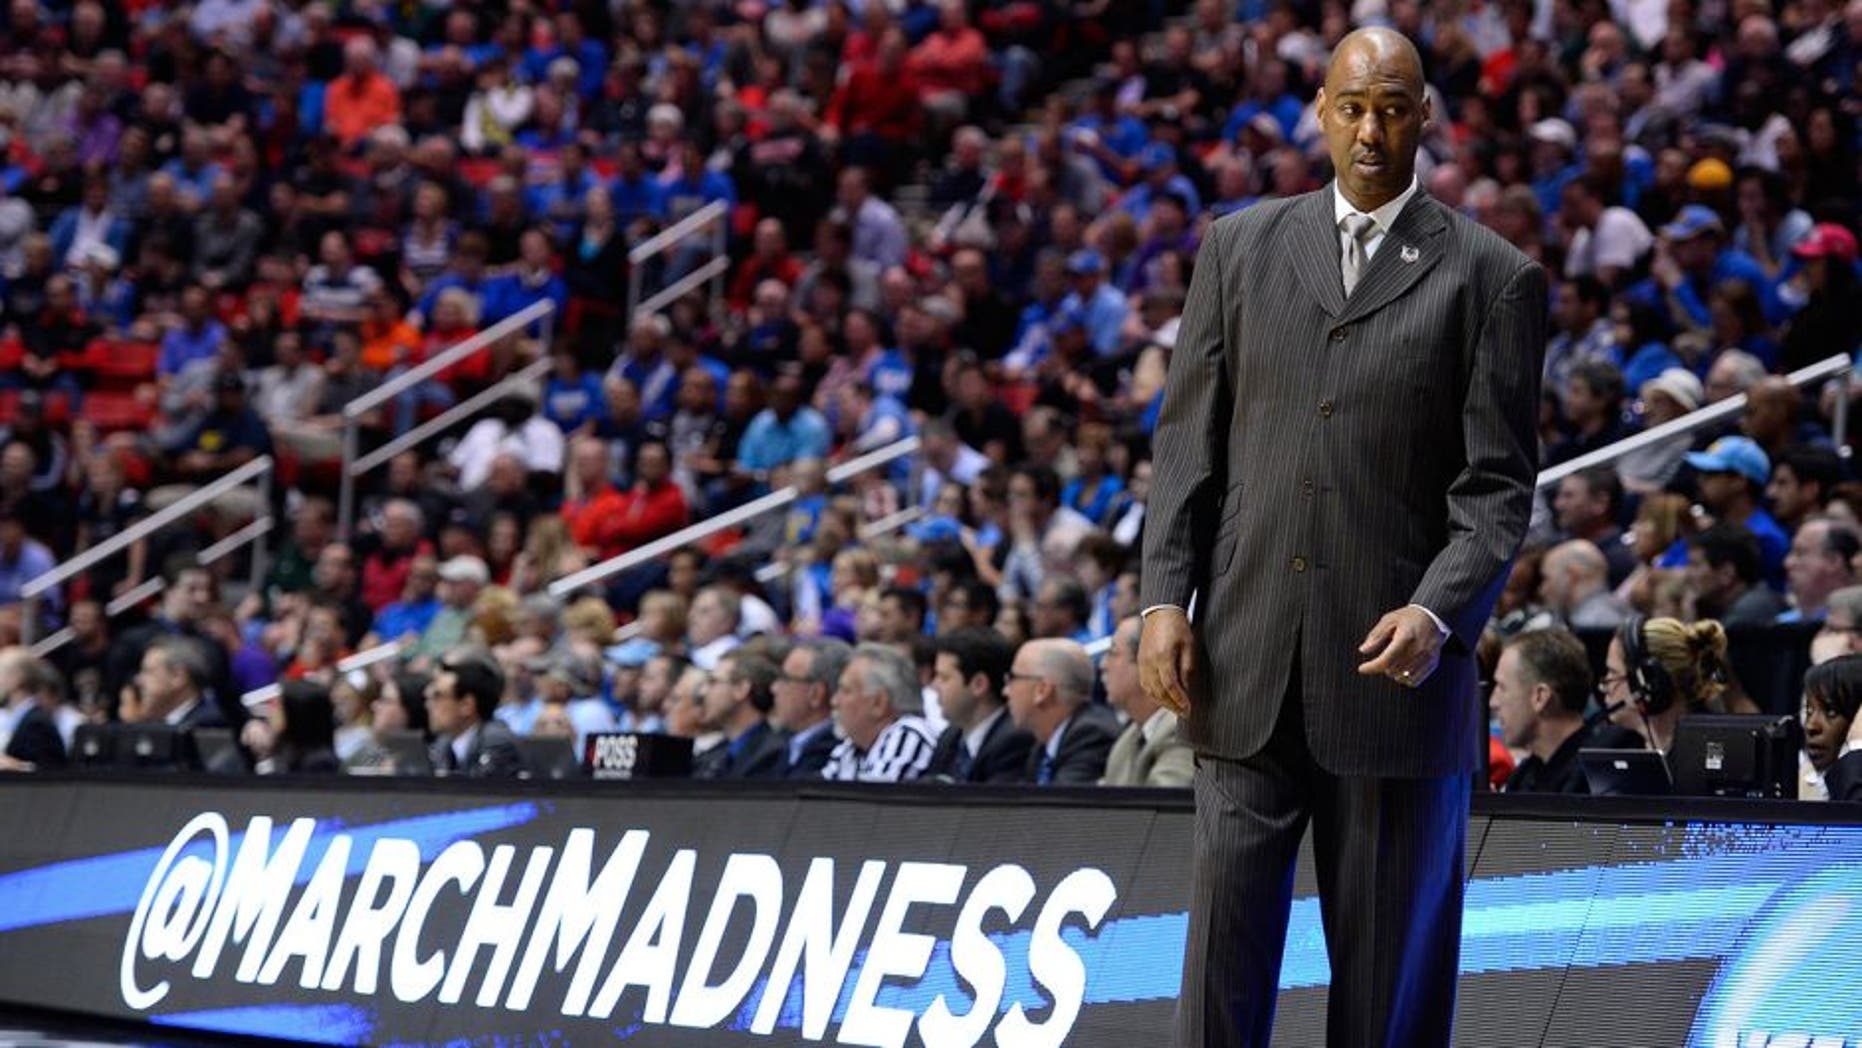 Mar 21, 2014; San Diego, CA, USA; Tulsa Golden Hurricane head coach Danny Manning in the first half of a men's college basketball game during the second round of the 2014 NCAA Tournament against the UCLA Bruins at Viejas Arena. Mandatory Credit: Christopher Hanewinckel-USA TODAY Sports